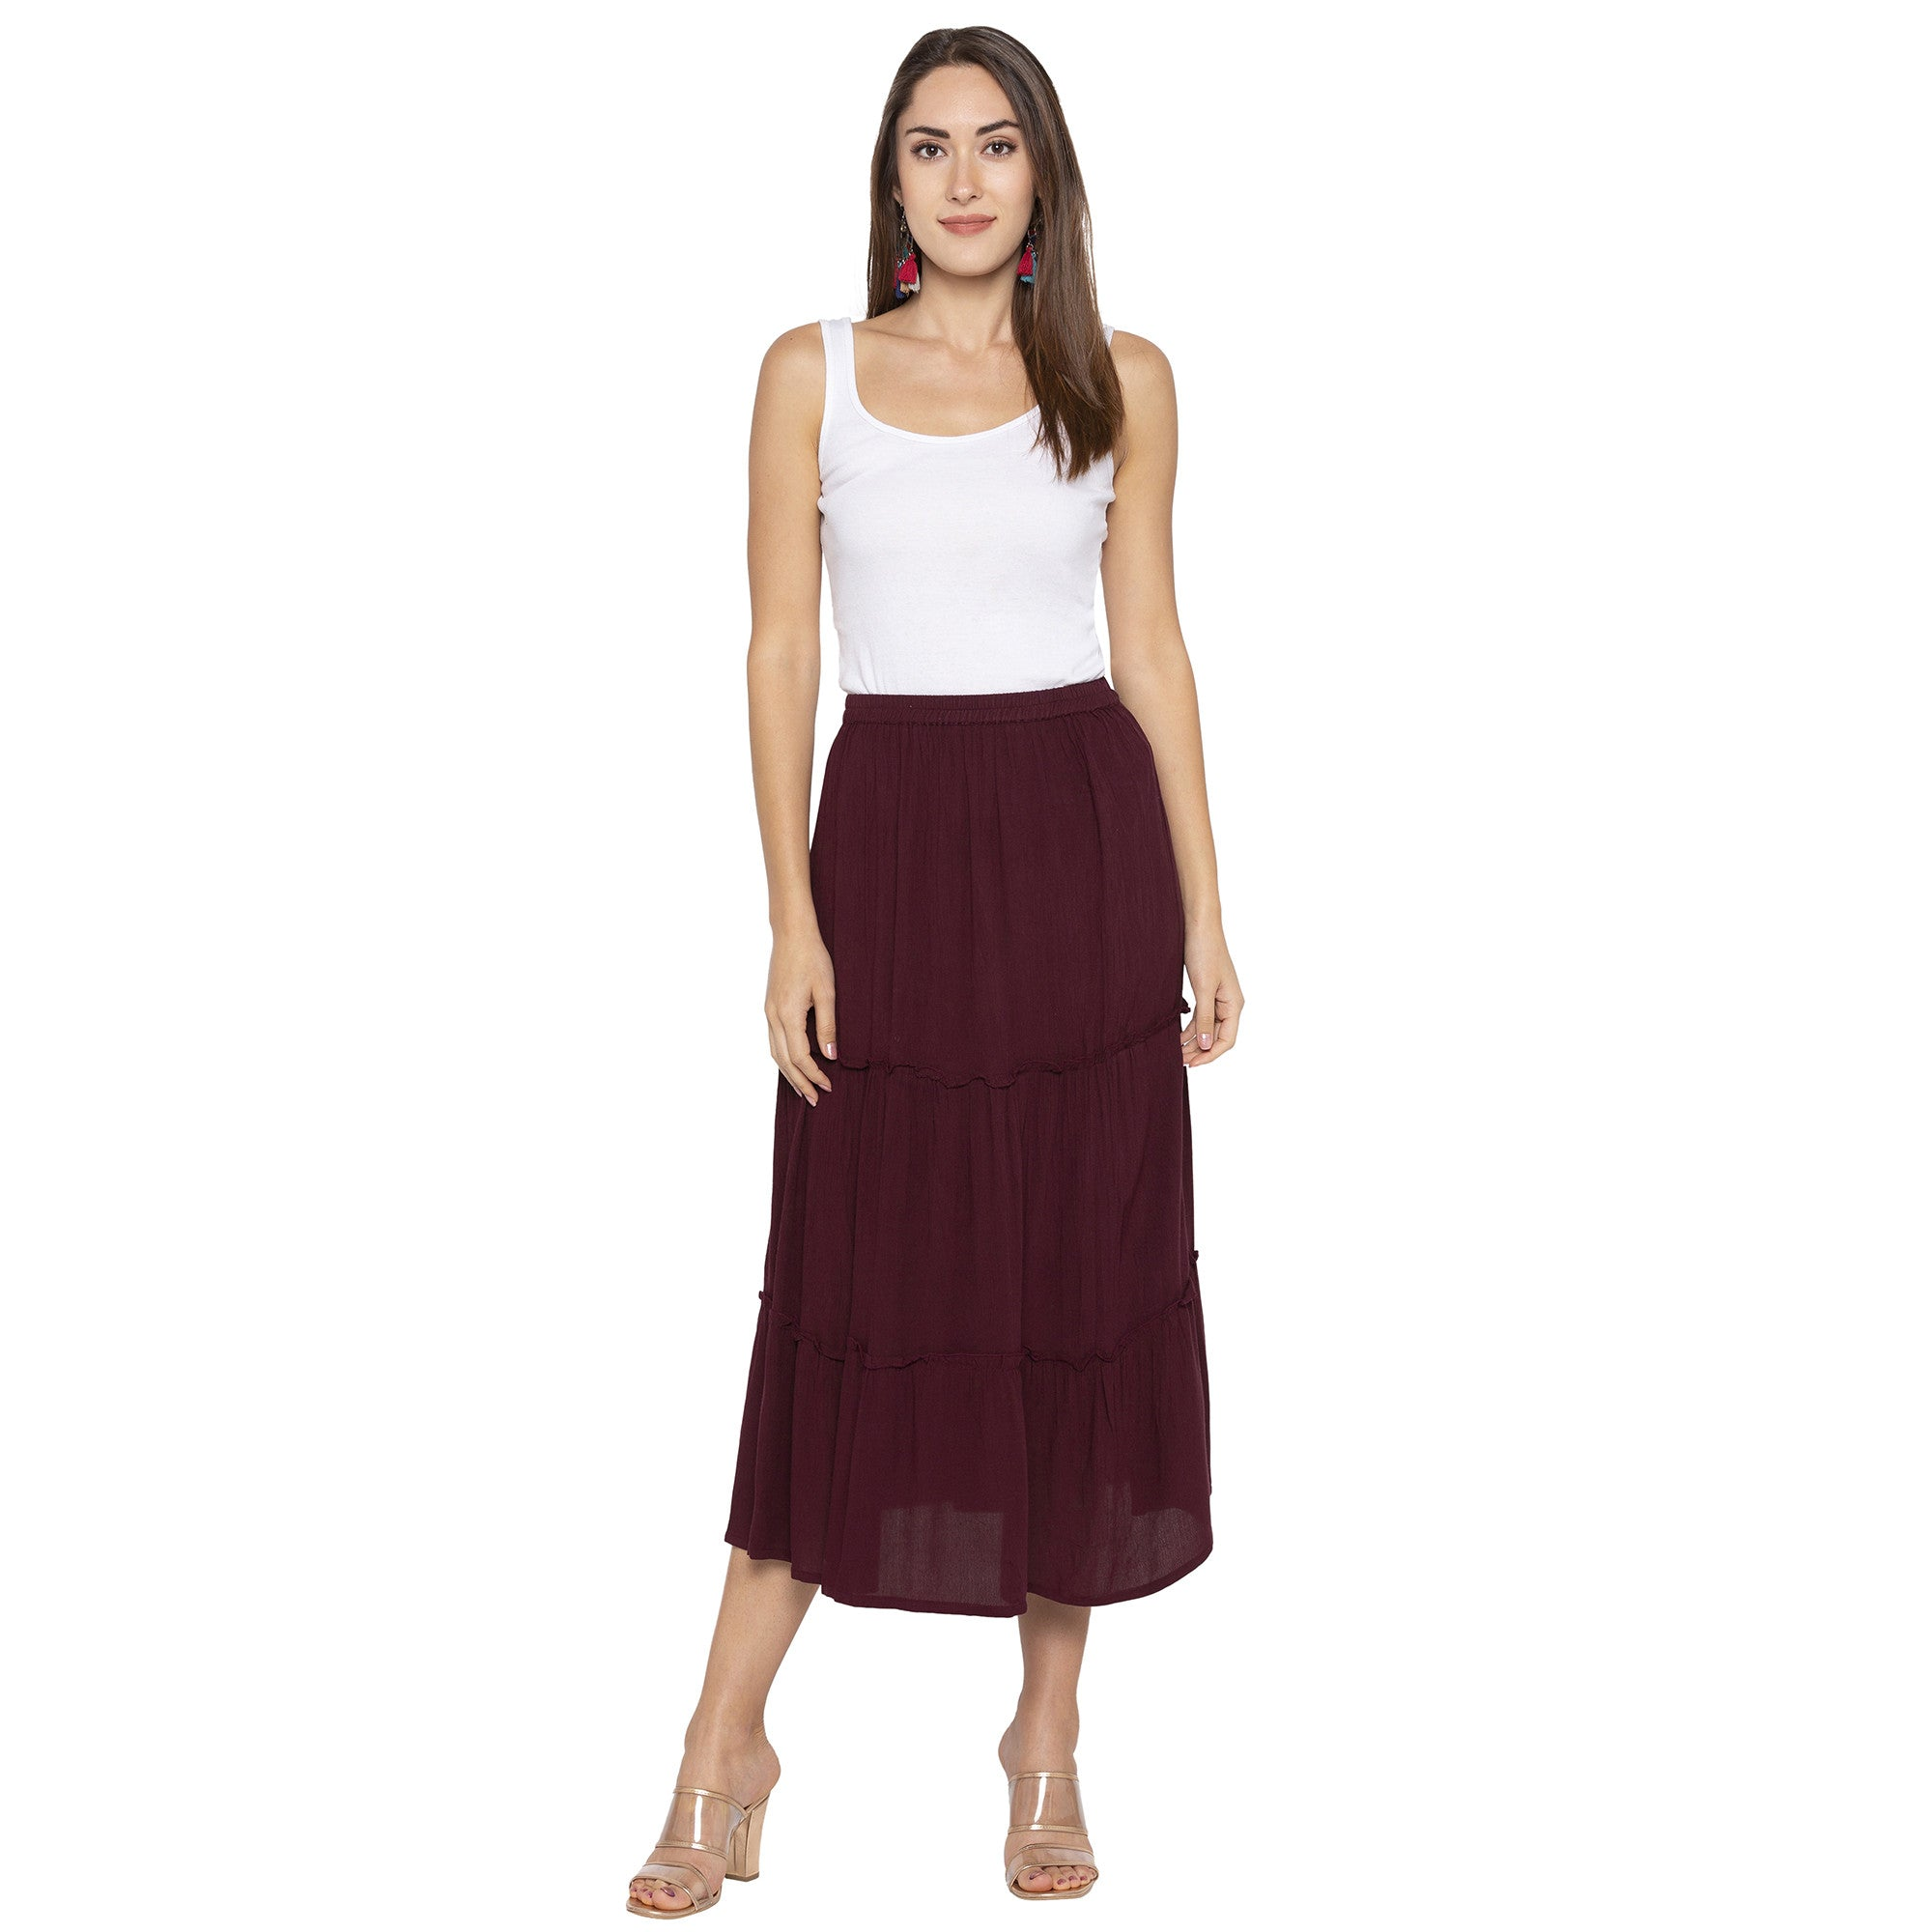 Burgundy Solid Skirts-4